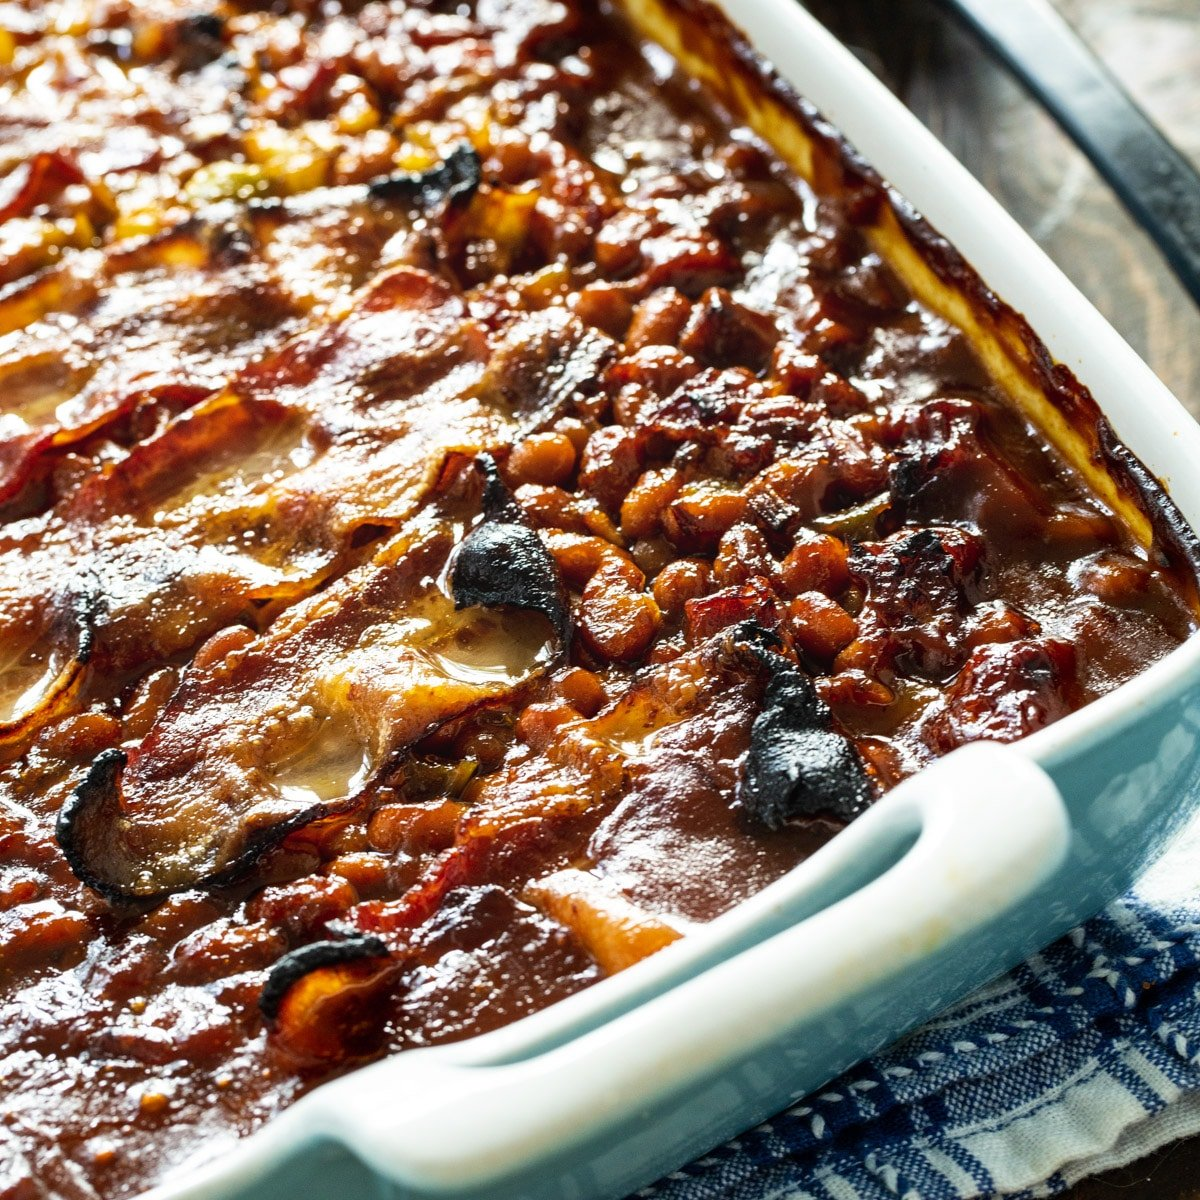 Molasses Baked Beans topped with bacon in a baking dish.